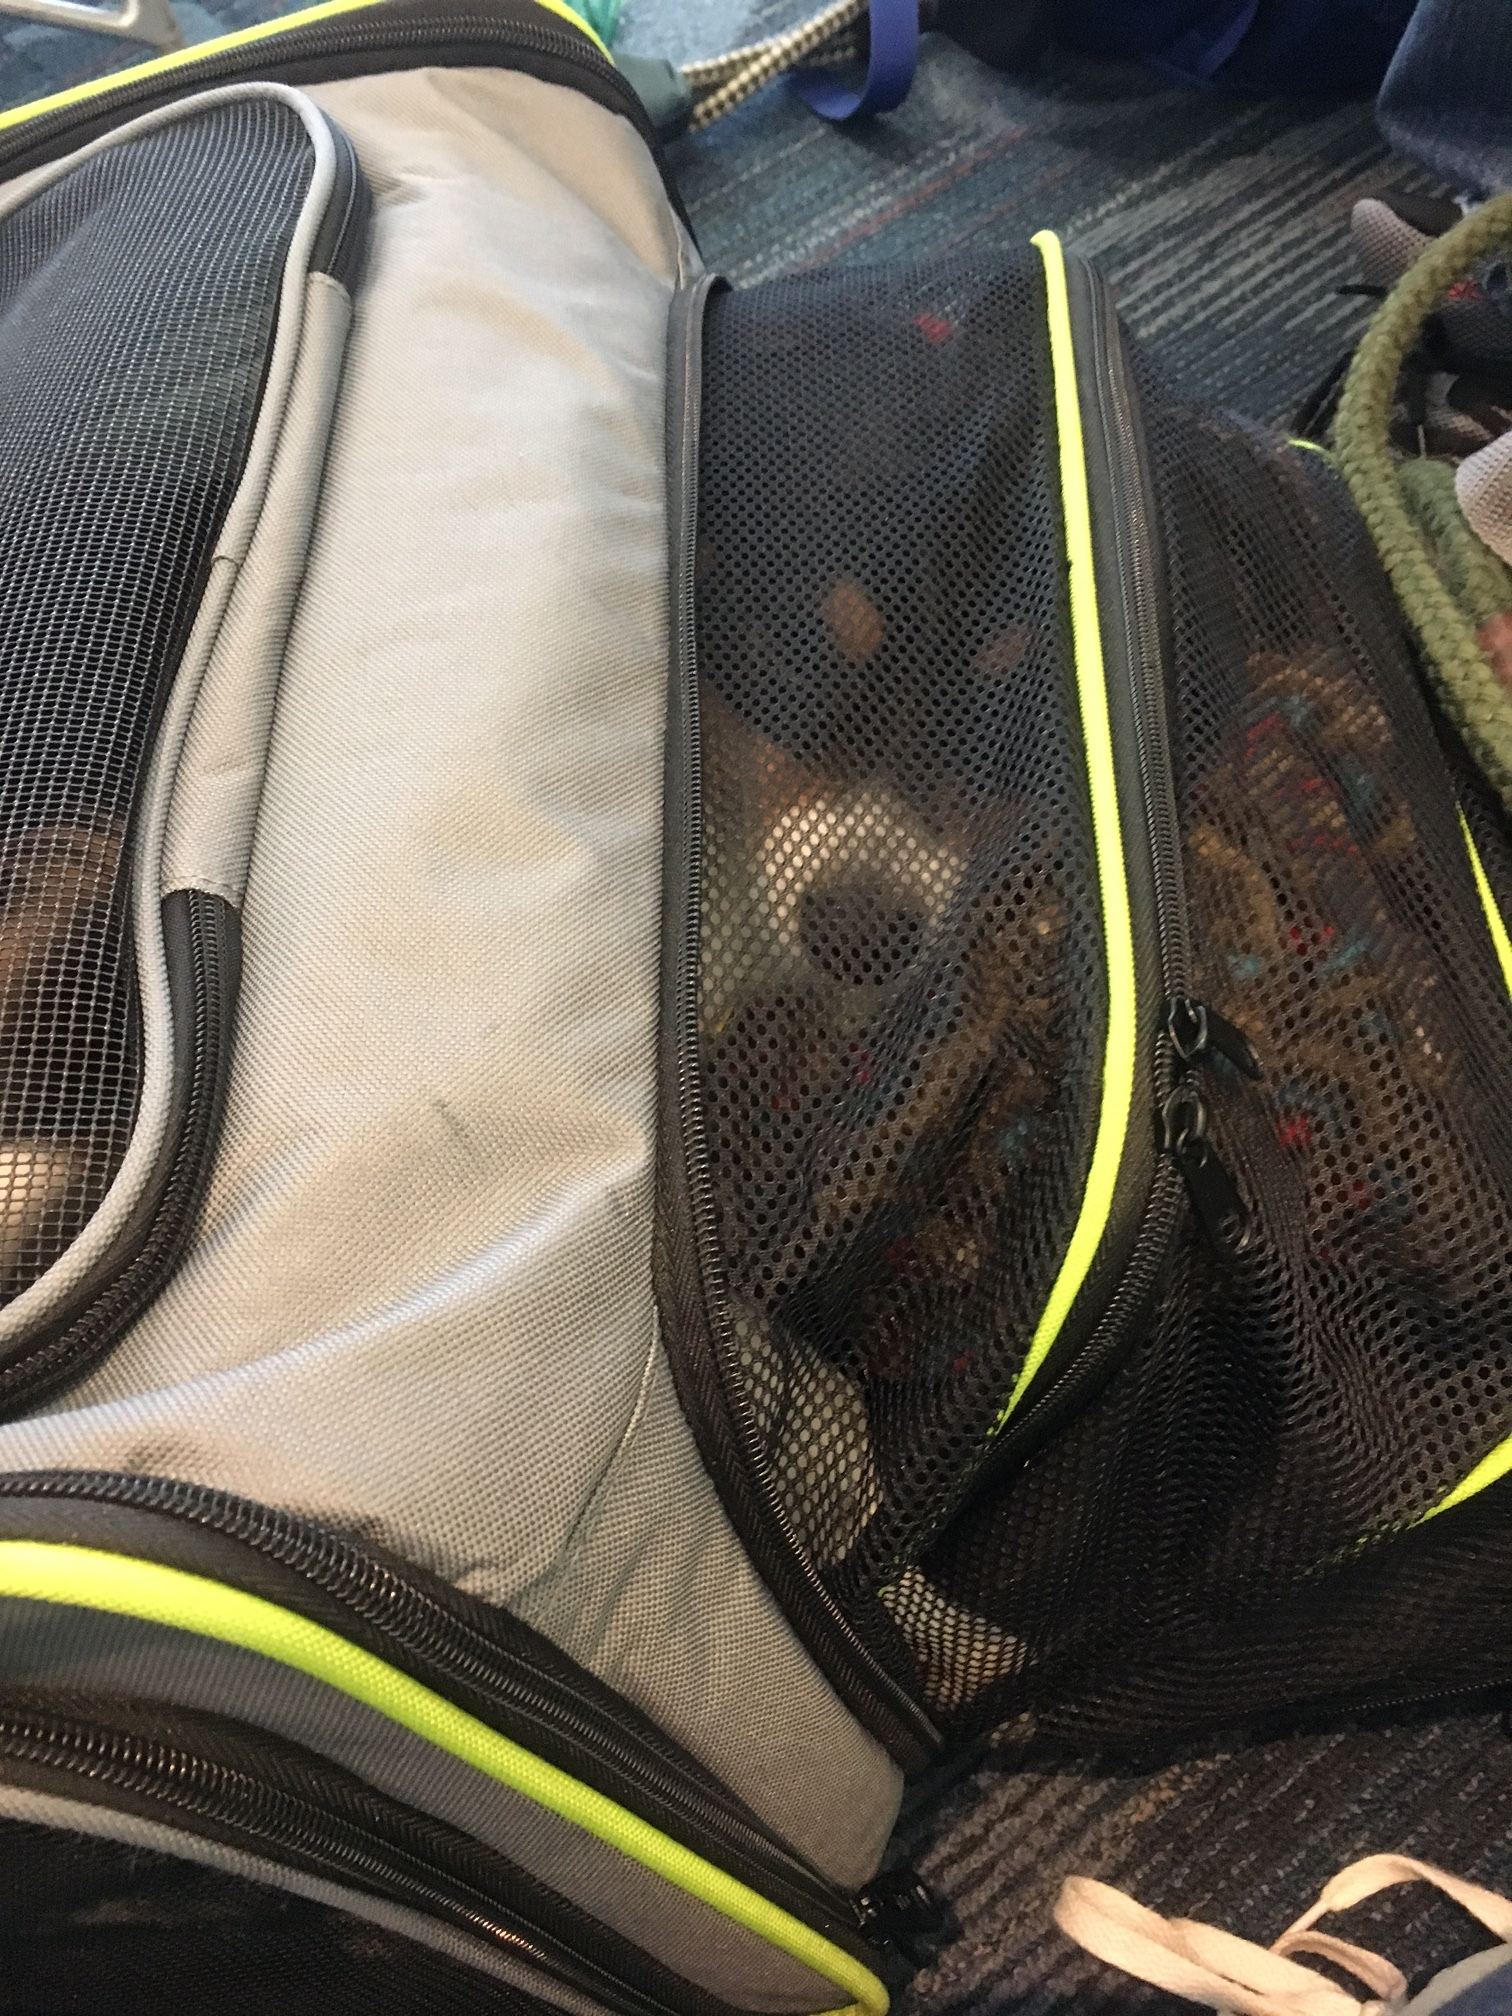 PCS-with-dogs-carry-on-carriers-schuyler-croy-2.JPG